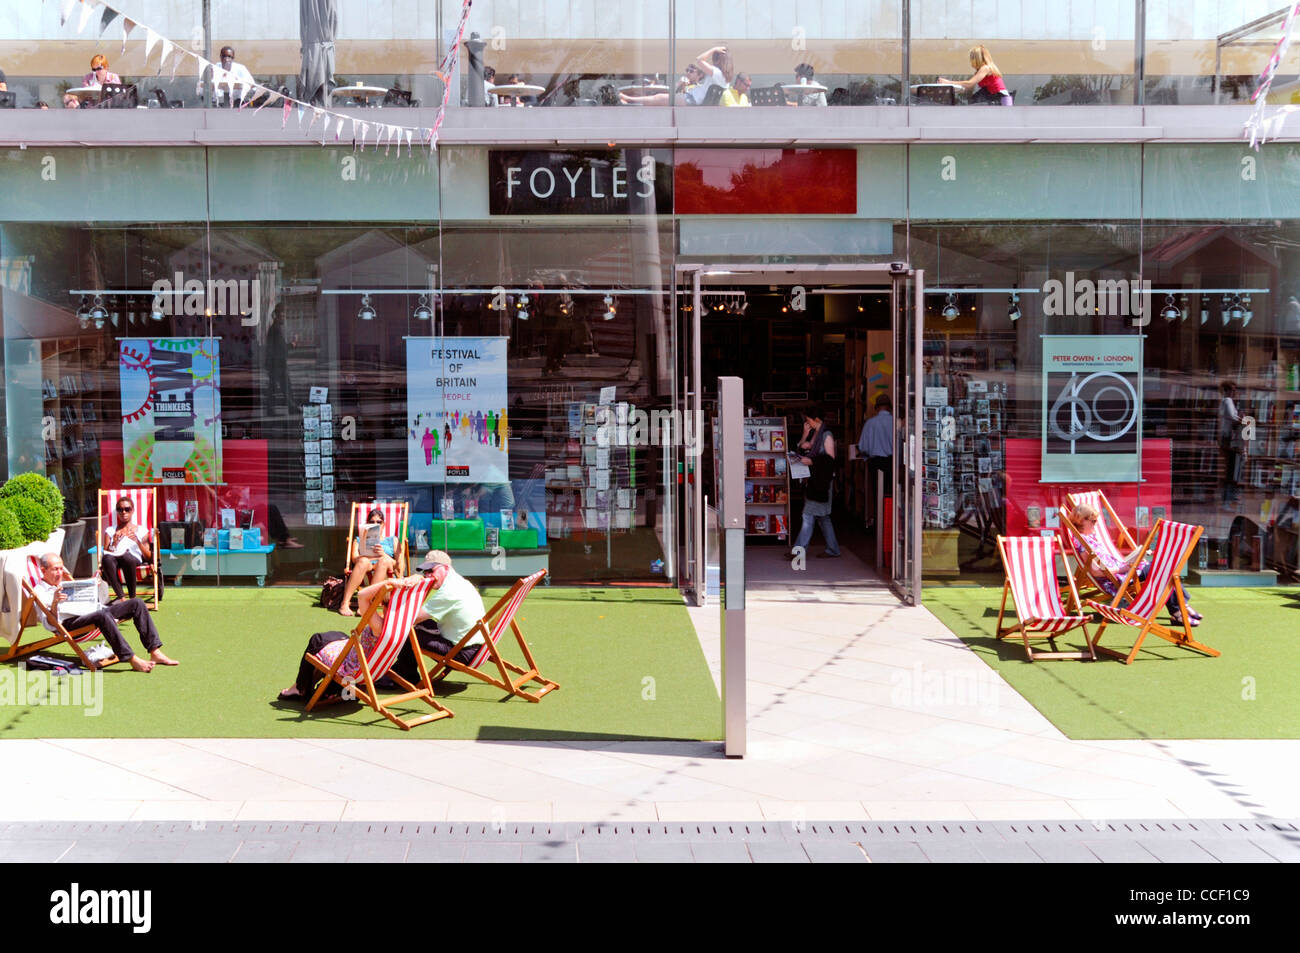 People enjoying summer sunshine sitting in deck chair outside the Foyles bookshop at Southbank Centre Lambeth London - Stock Image